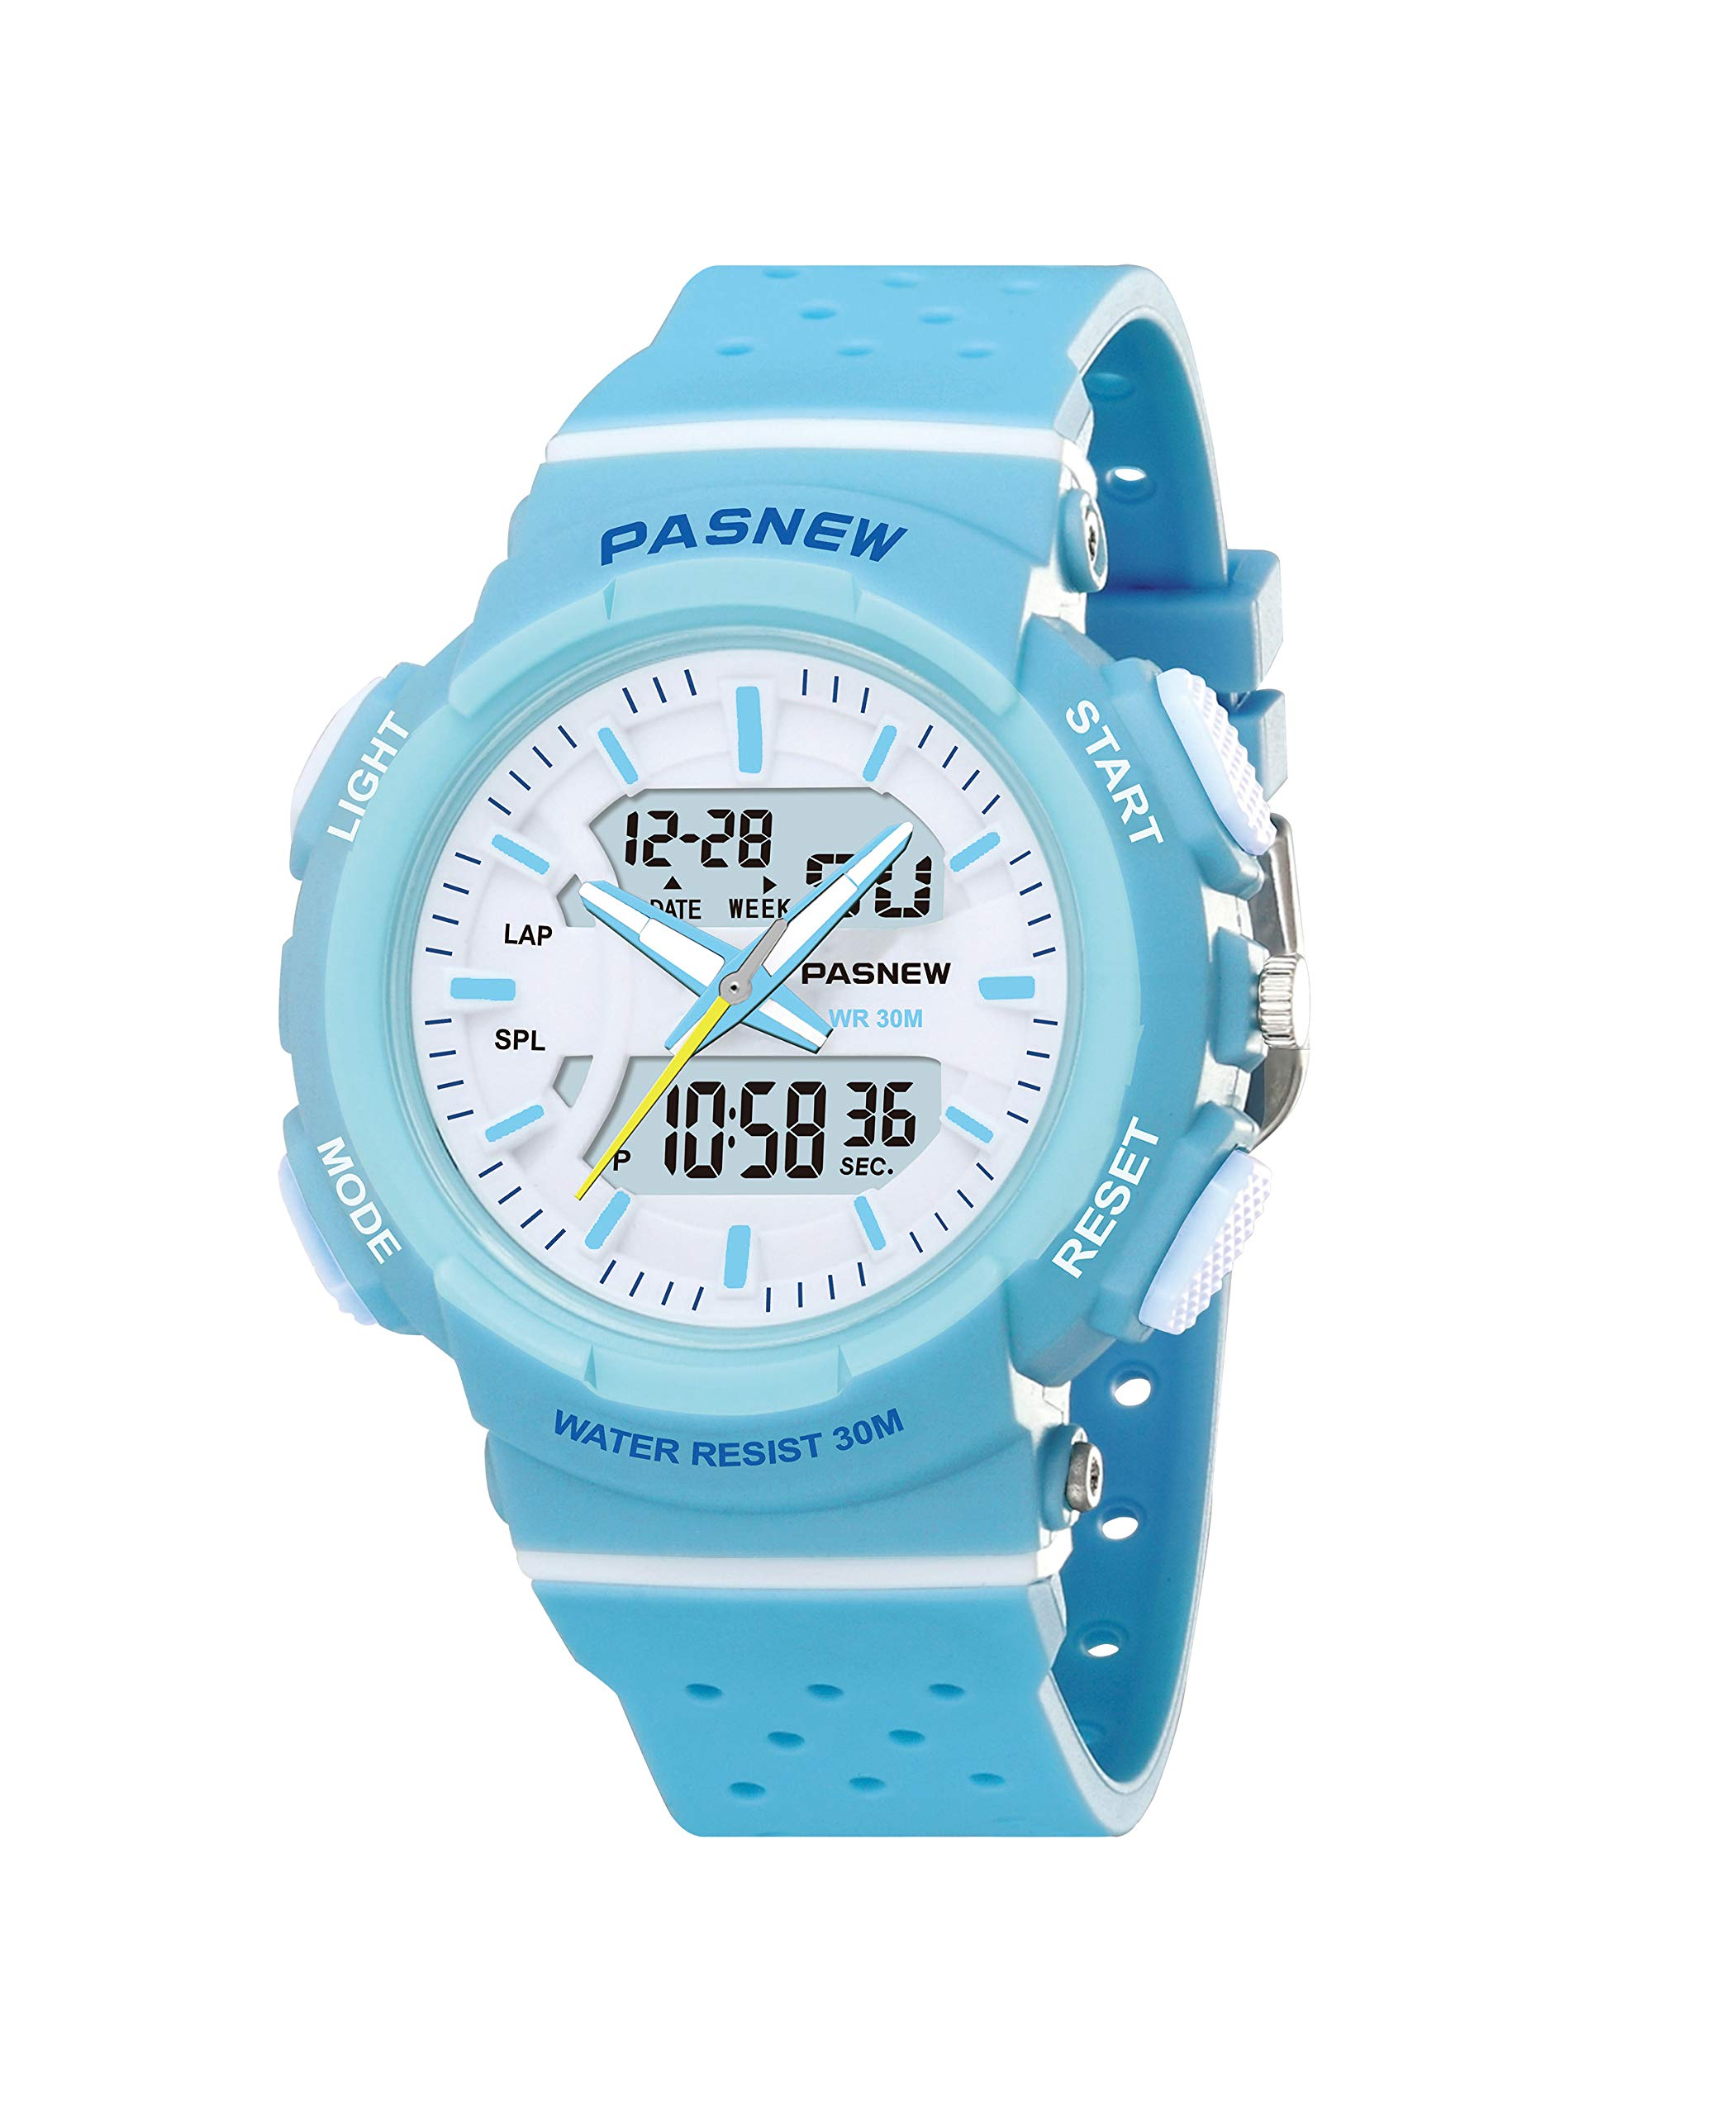 PASNEW Kid Watch Multi Function Digital-Analog Sport Watches for 7-Year Old or Above Children-LightBlue by PASNEW